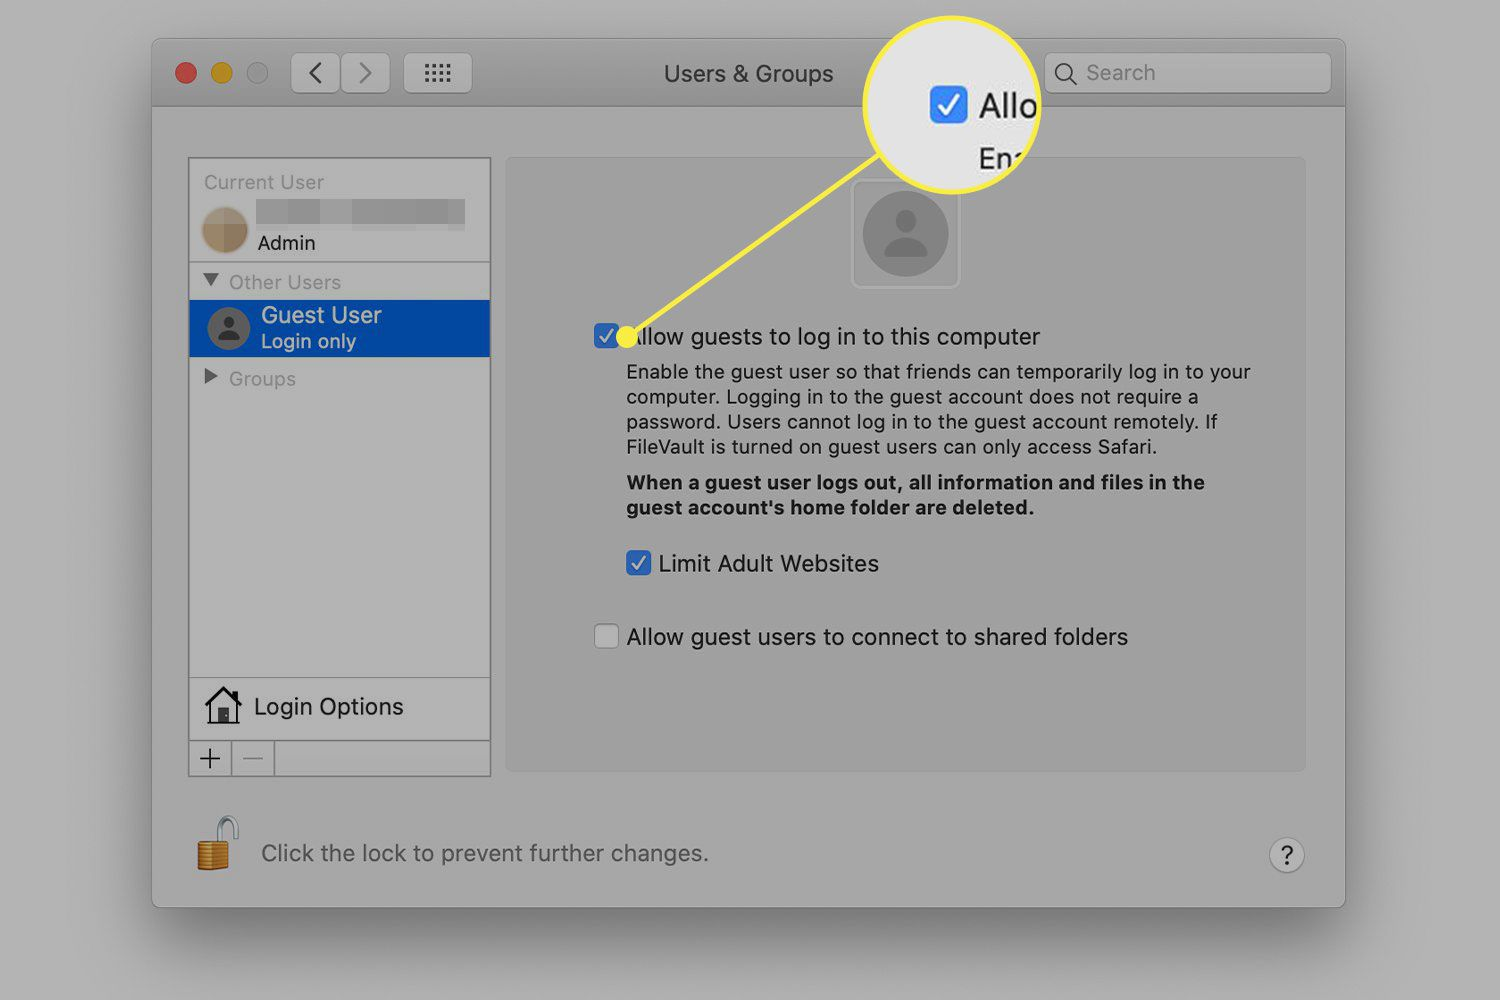 A screenshot of Users & Groups in macOS with the